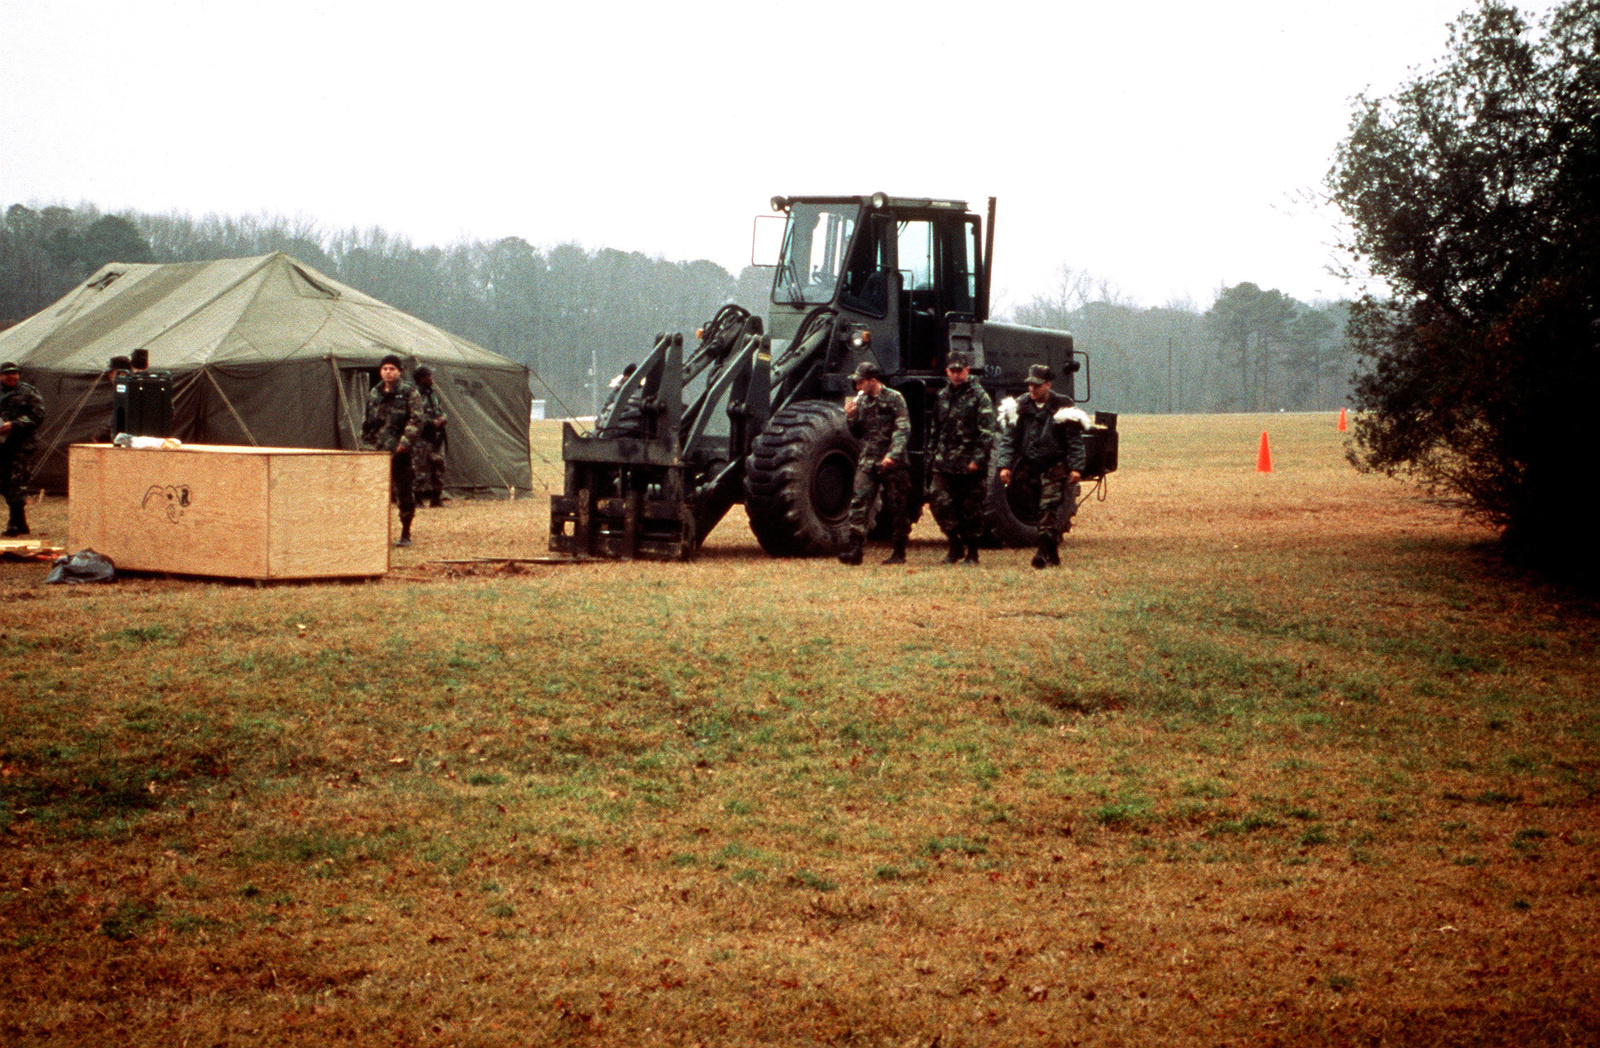 The setting up of camp was made easier by the help of a forklift on the first day of the field training exercise for the 11th Civil Engineer Squadron from Bolling Air Force Base, Washington, DC